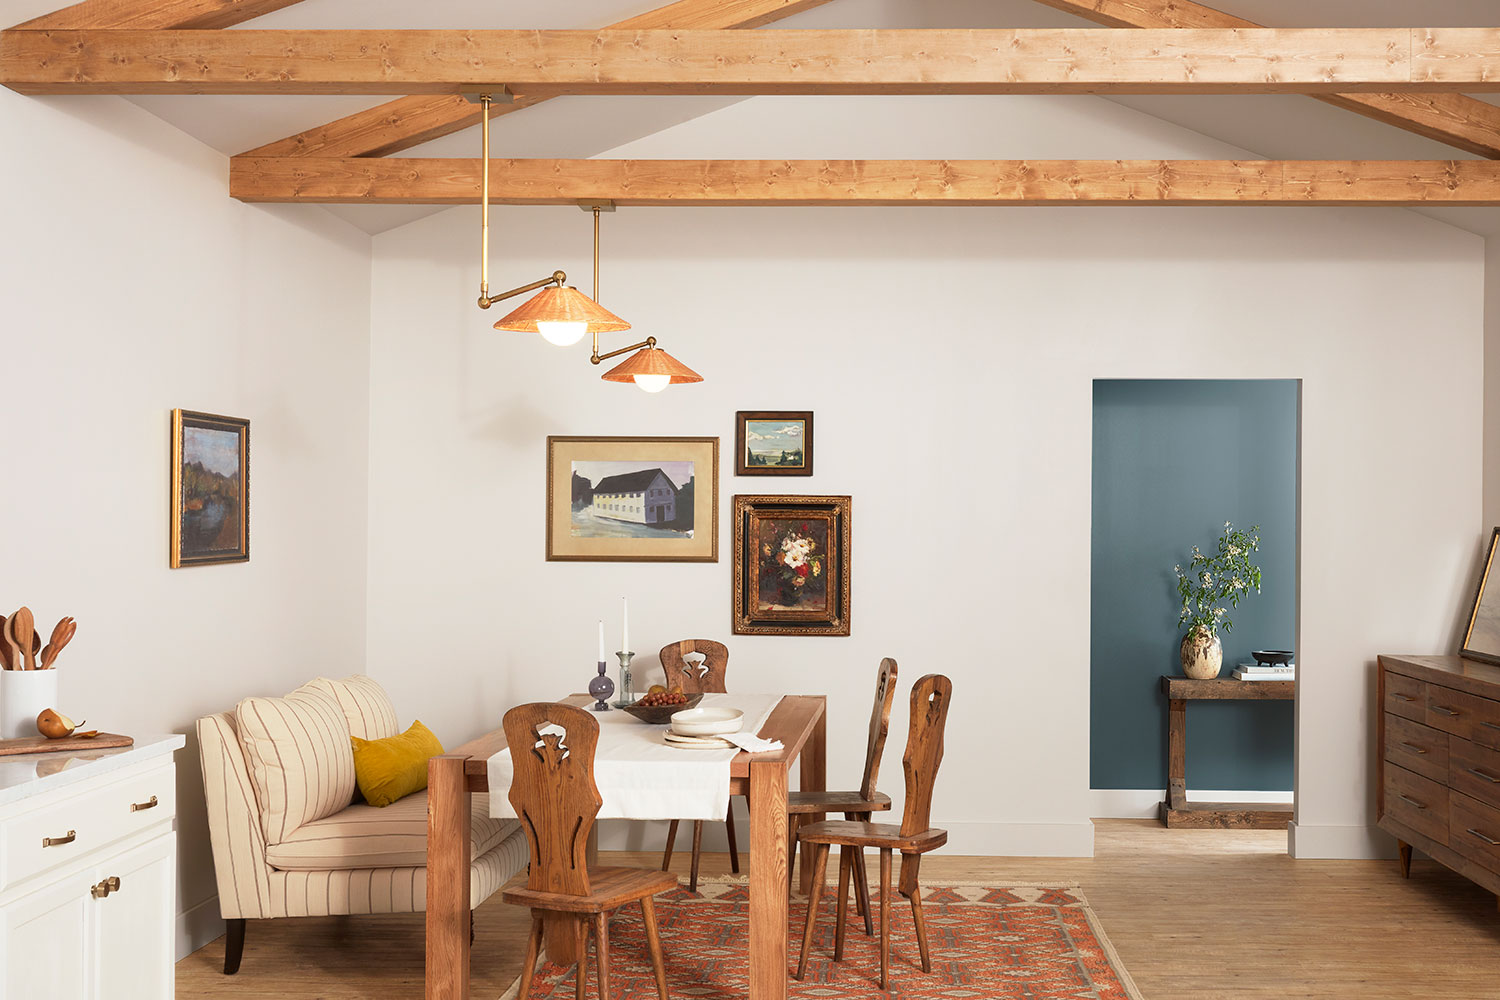 Modern Belgian styled dining room with rustic wood table and exposed wooden beams on ceiling, walls are Eider White SW 7014